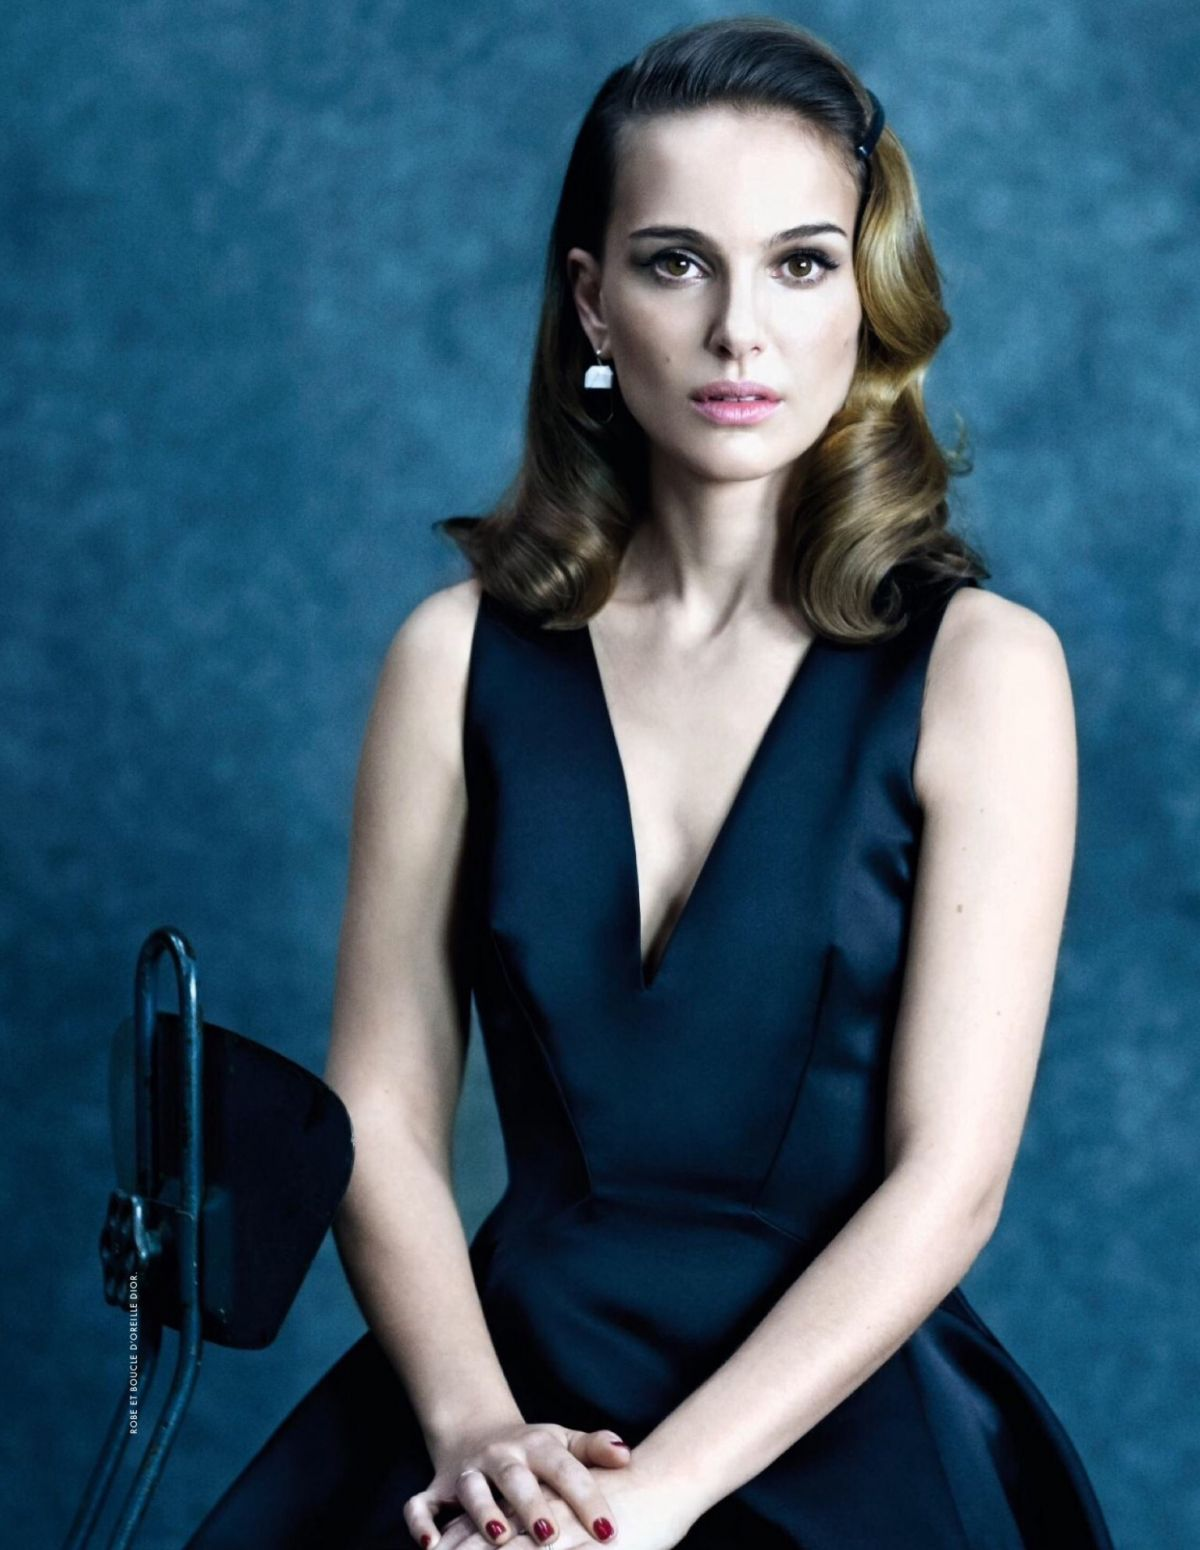 natalie portman - photo #3